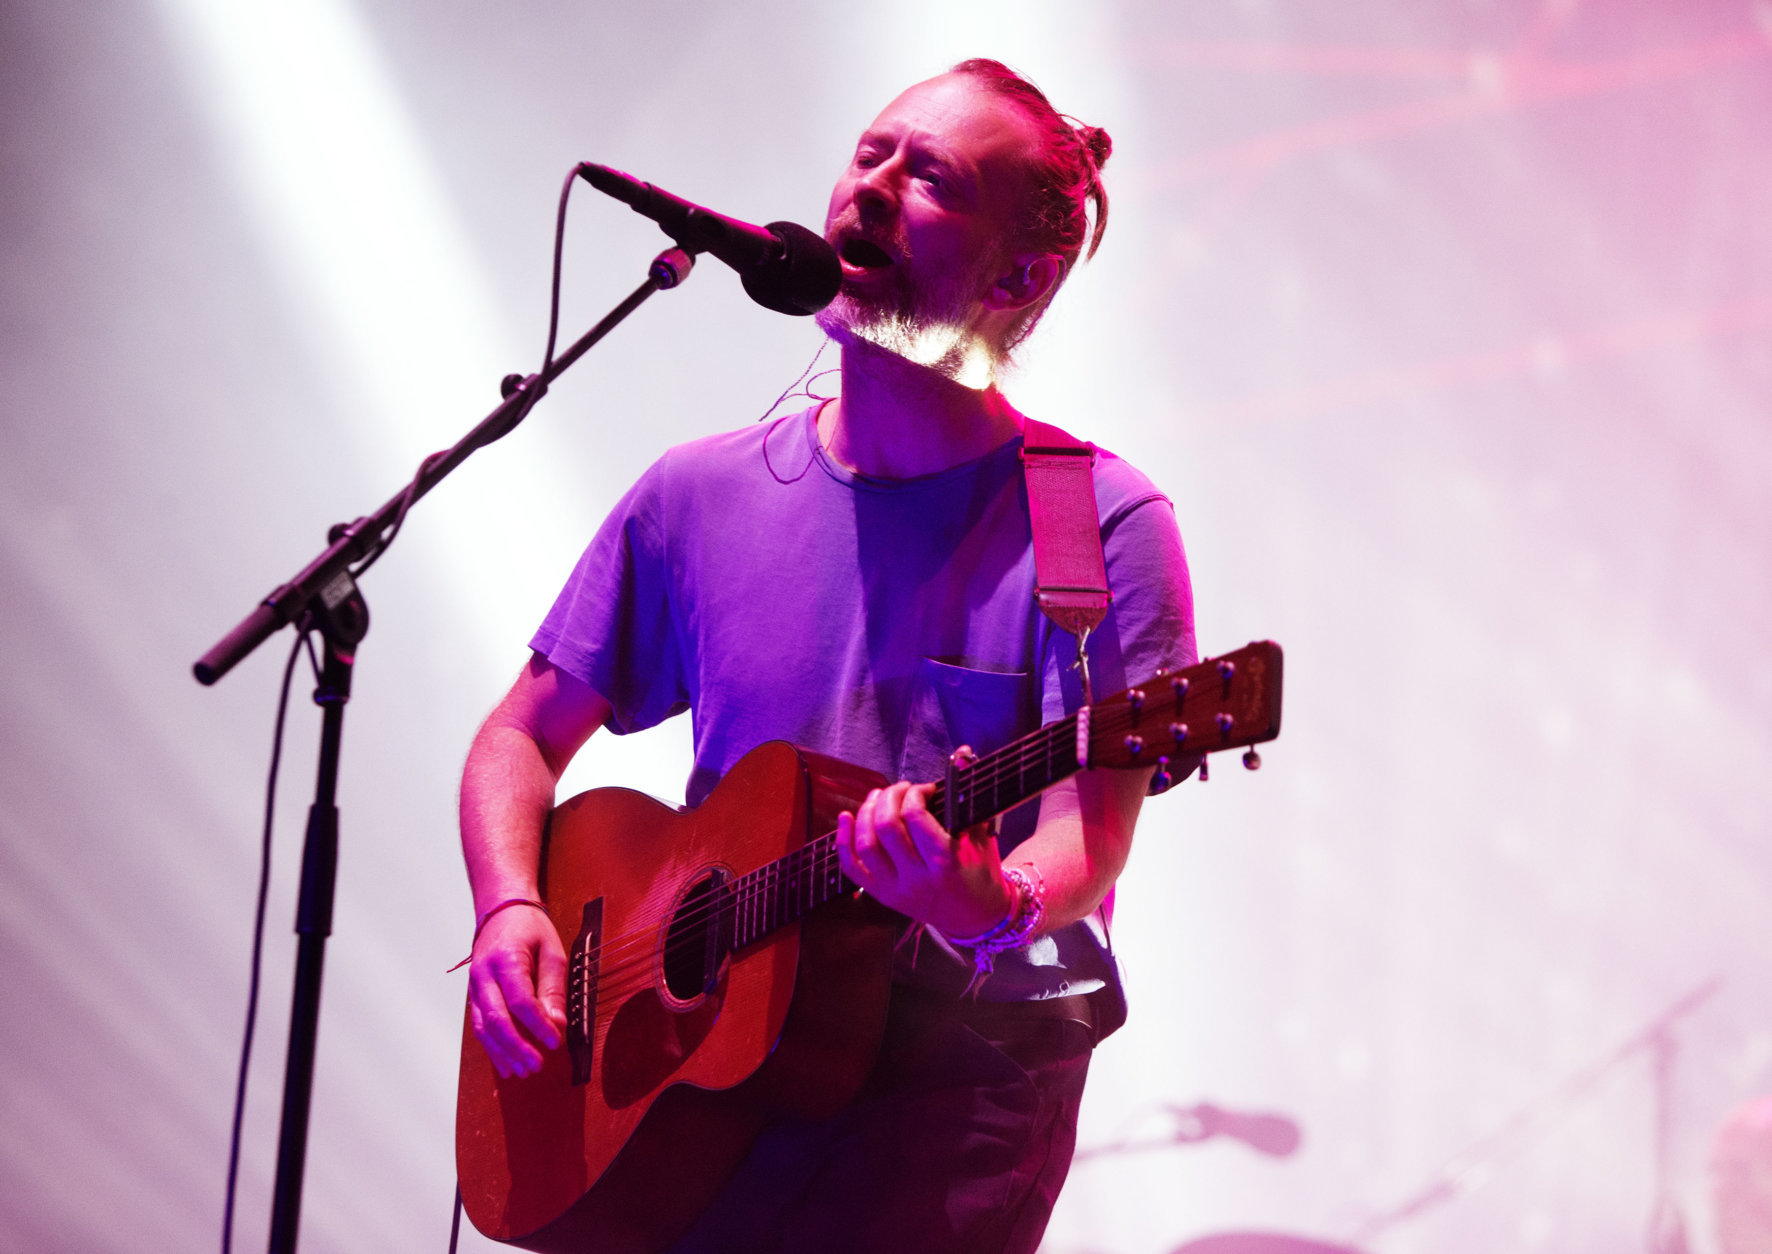 """Thom Yorke of the band Radiohead performs in concert during their """"A Moon Shaped Pool Tour"""" at The Wells Fargo Center on Tuesday, July 31, 2018, in Philadelphia. (Photo by Owen Sweeney/Invision/AP)"""